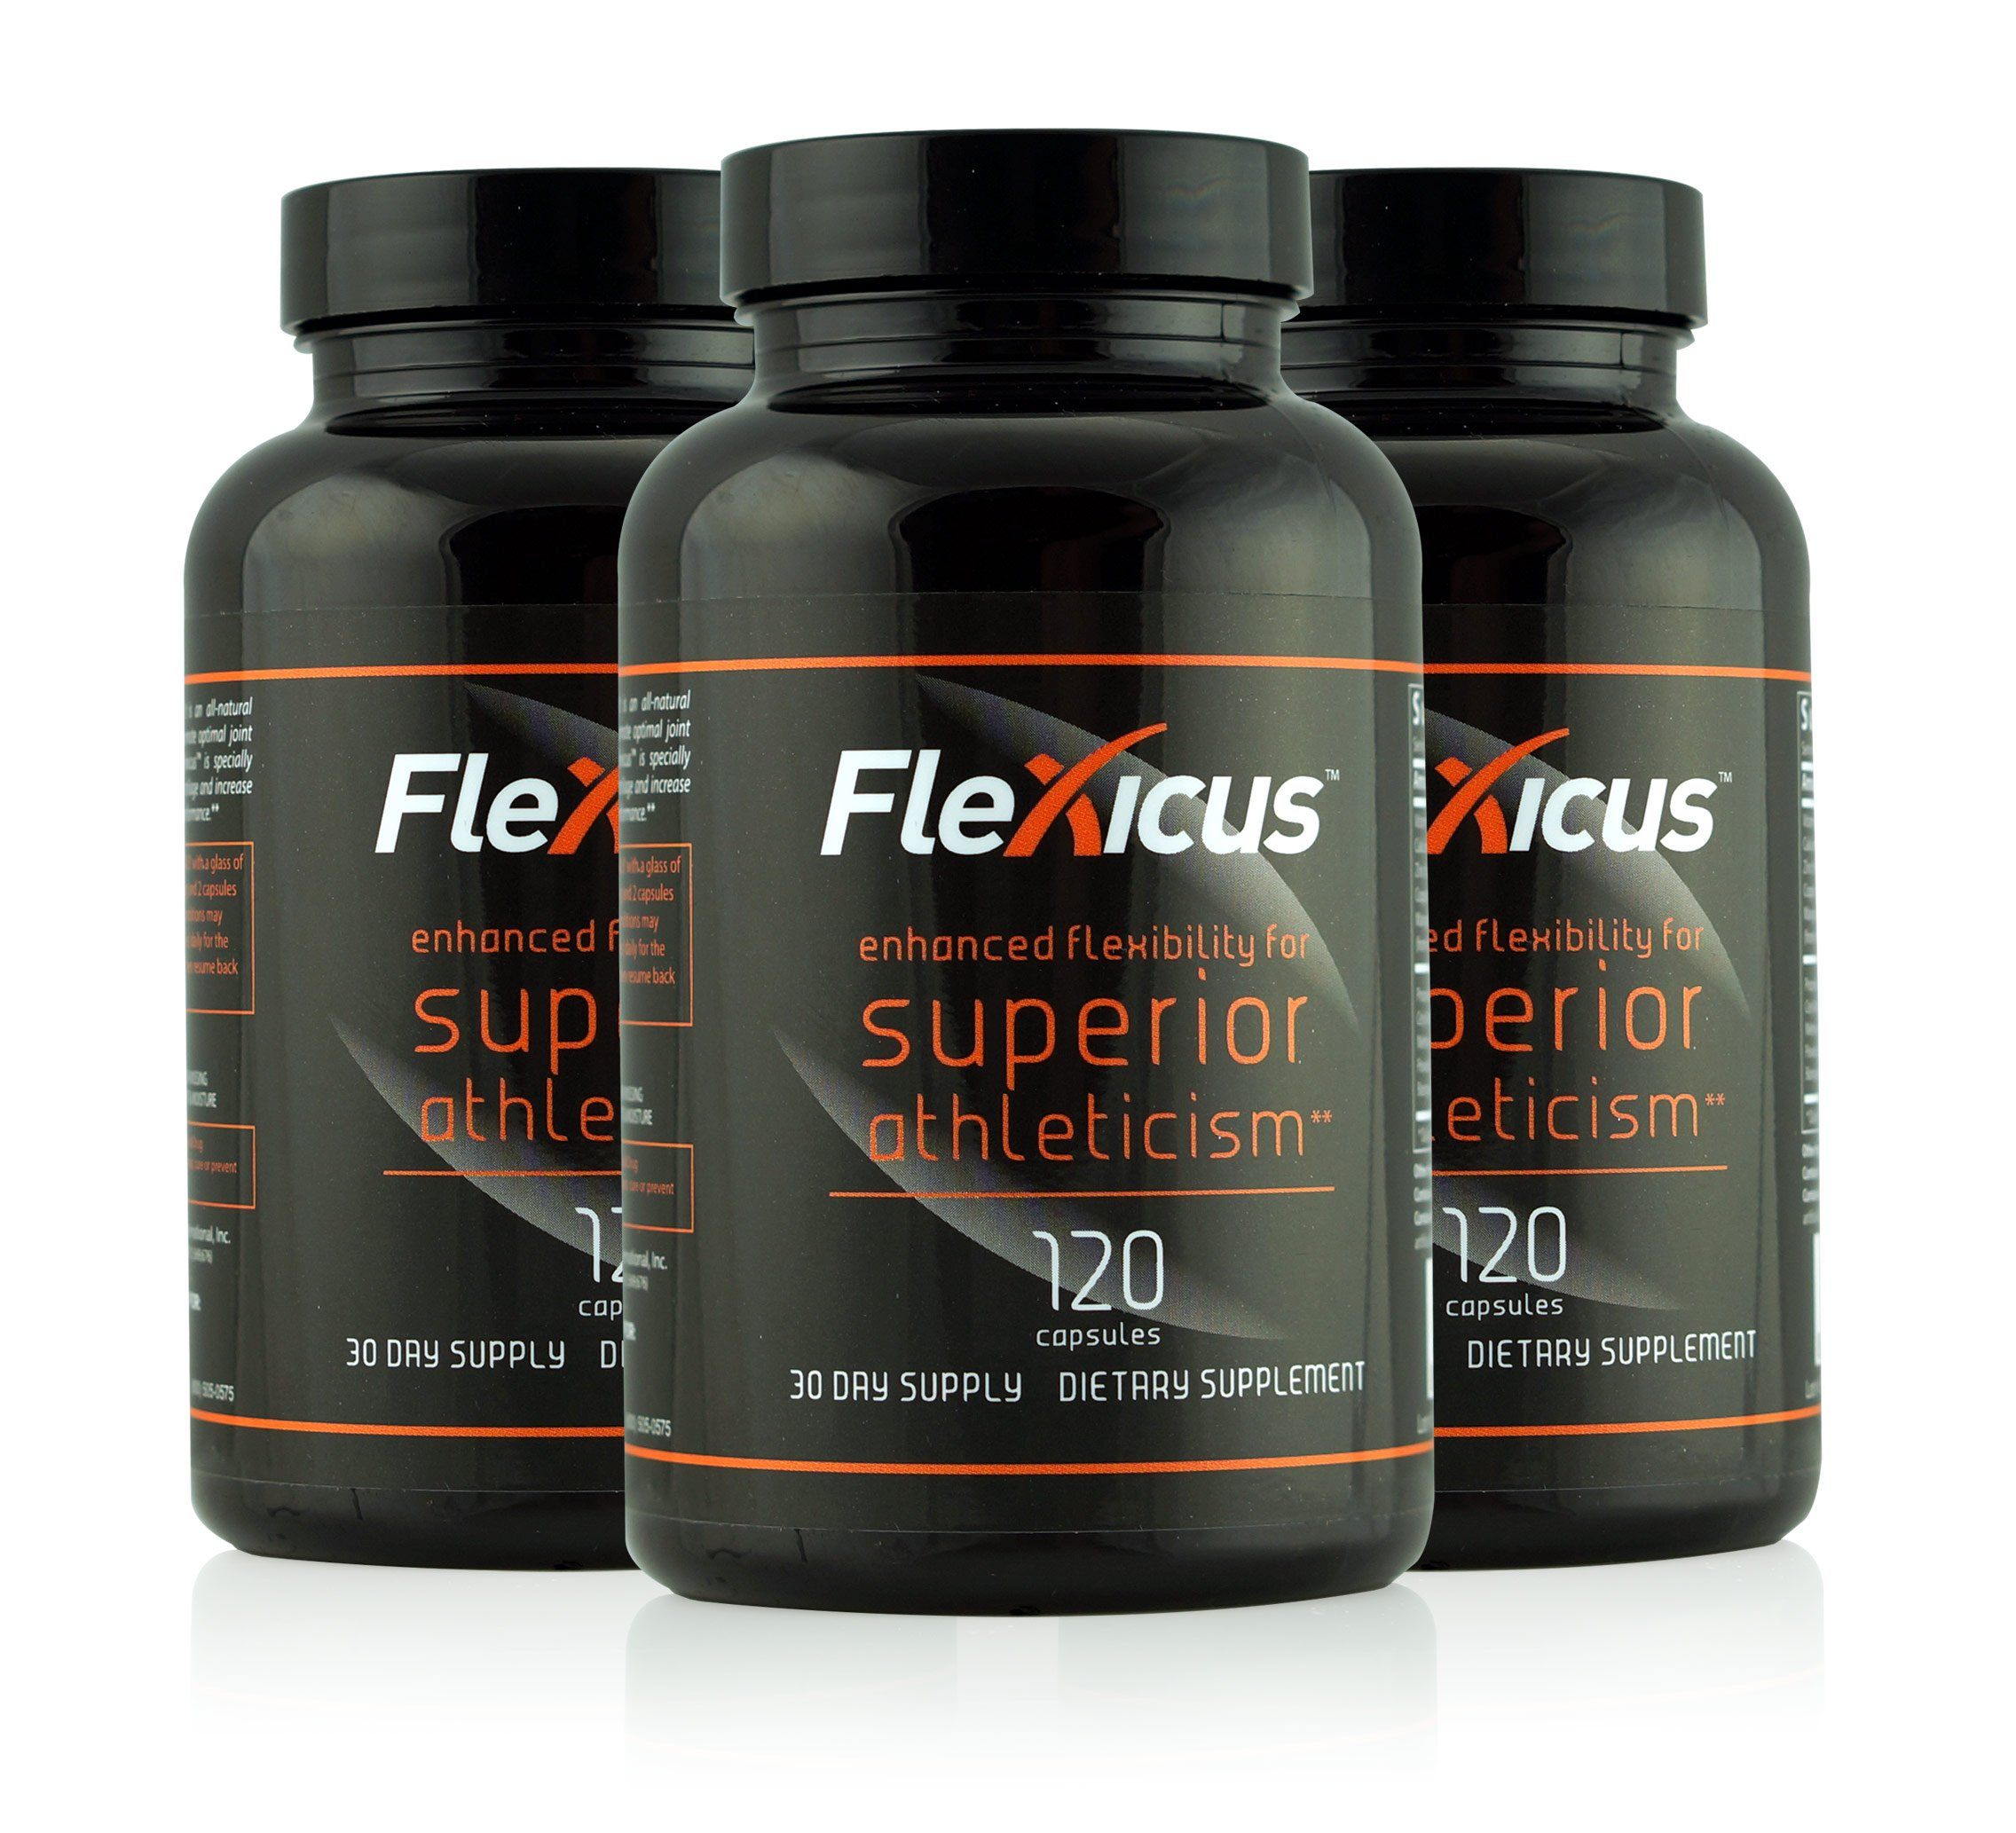 Flexicus with Cetyl Myristoleate (CM8) Maximum Strength Joint Supplement for Athletes: 3 Bottles, 360 Capsules